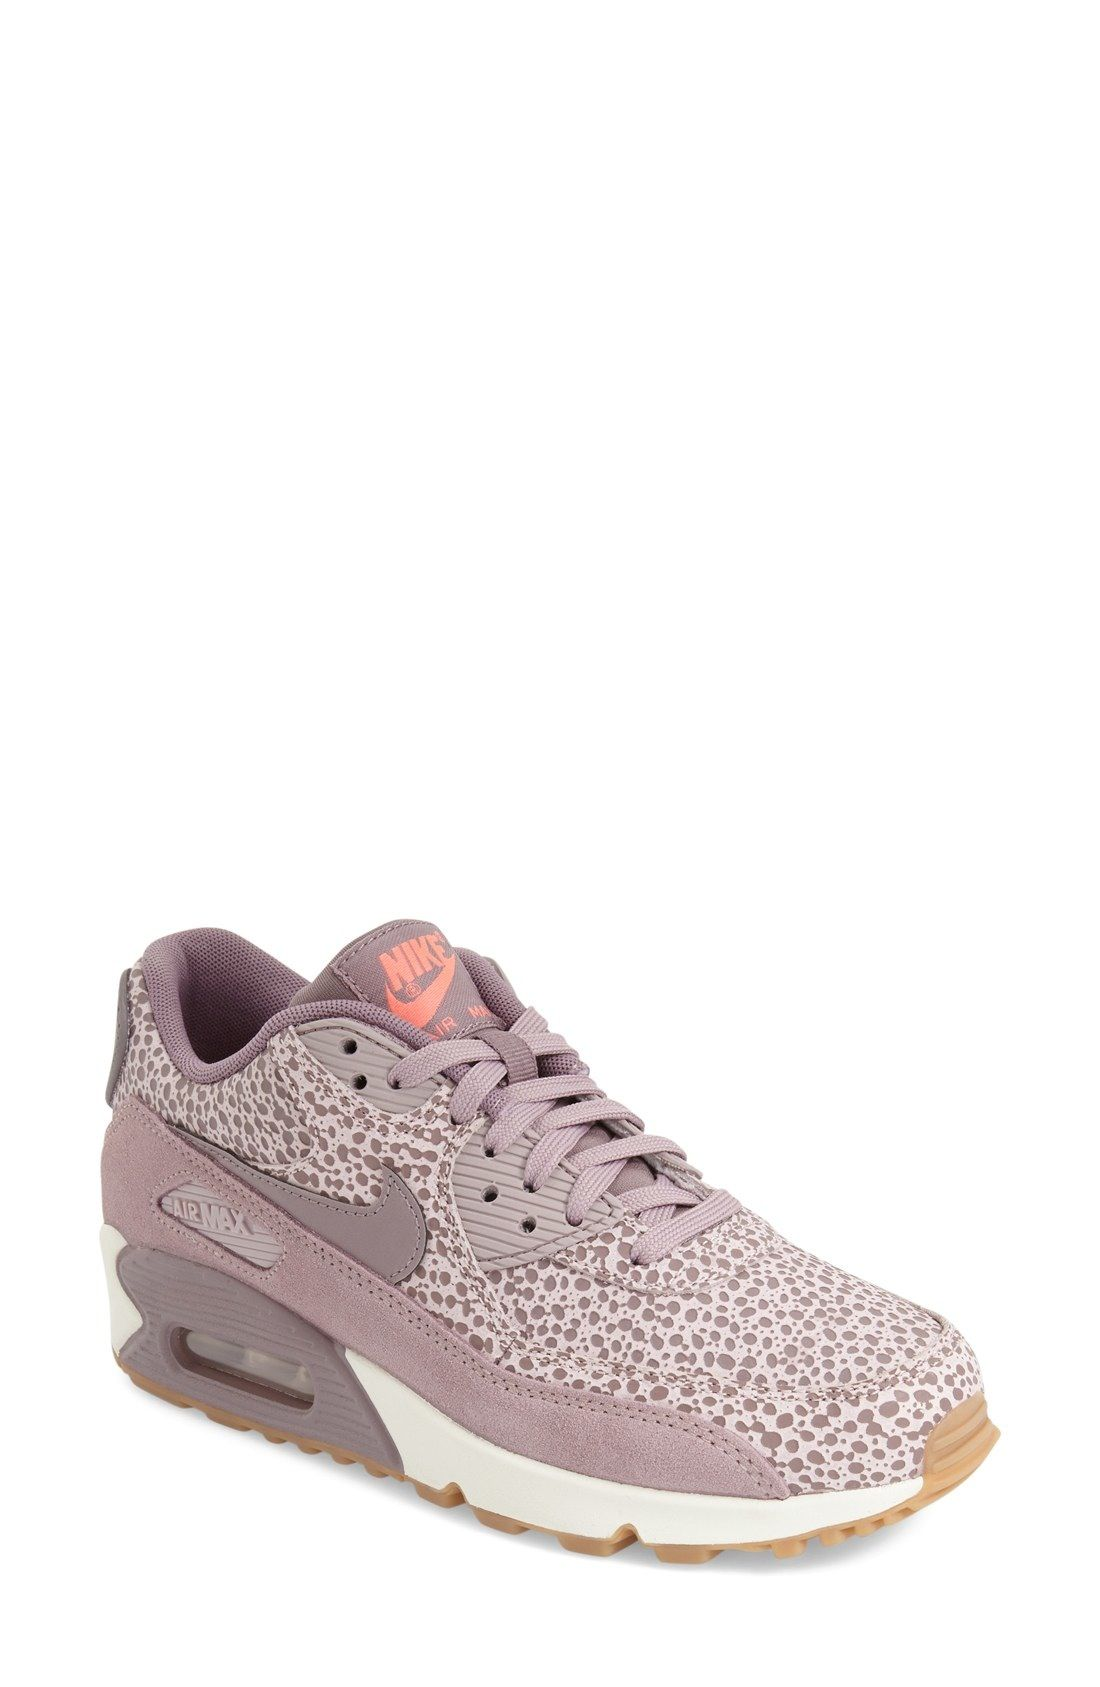 5dcfbdd1381 Nike  Air Max 90 - Premium  Sneaker (Women) available at  Nordstrom ...